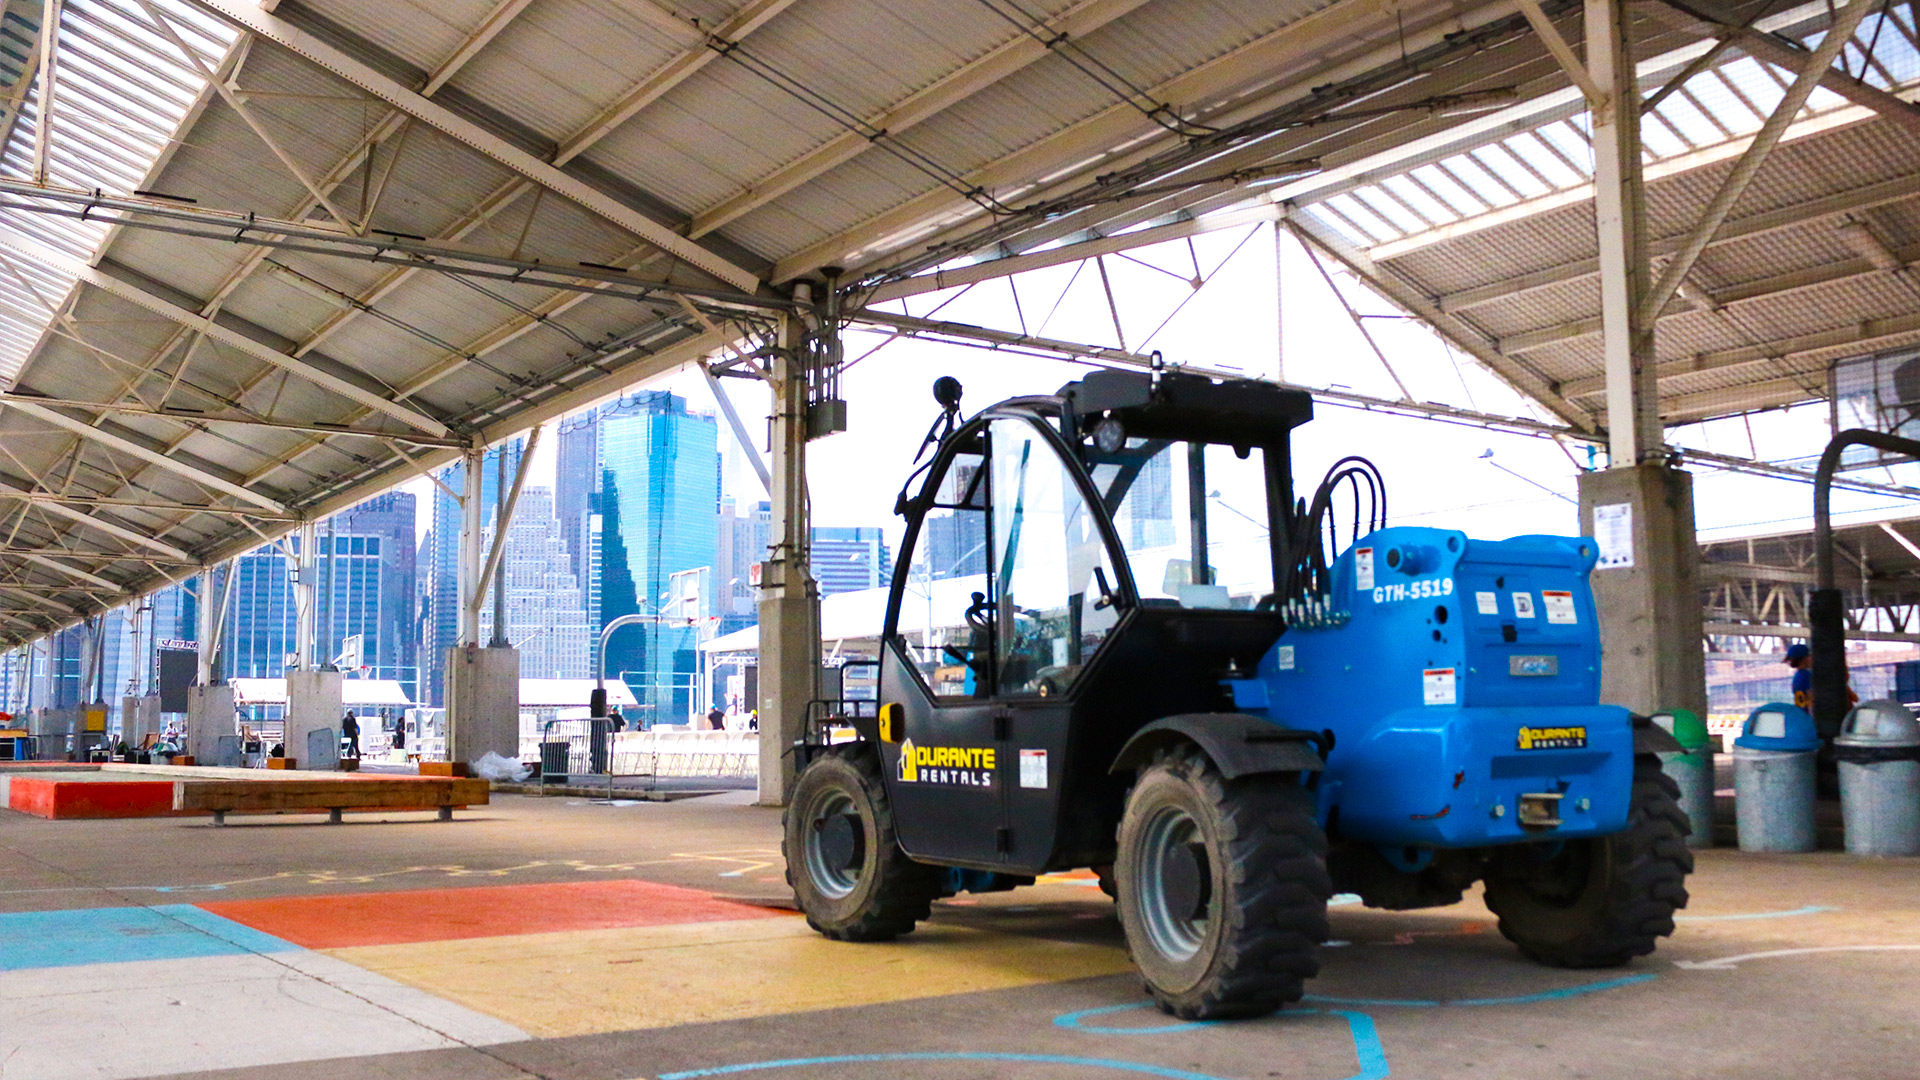 Genie Telehandler in Brooklyn Bridge Park Pier Basketball Courts